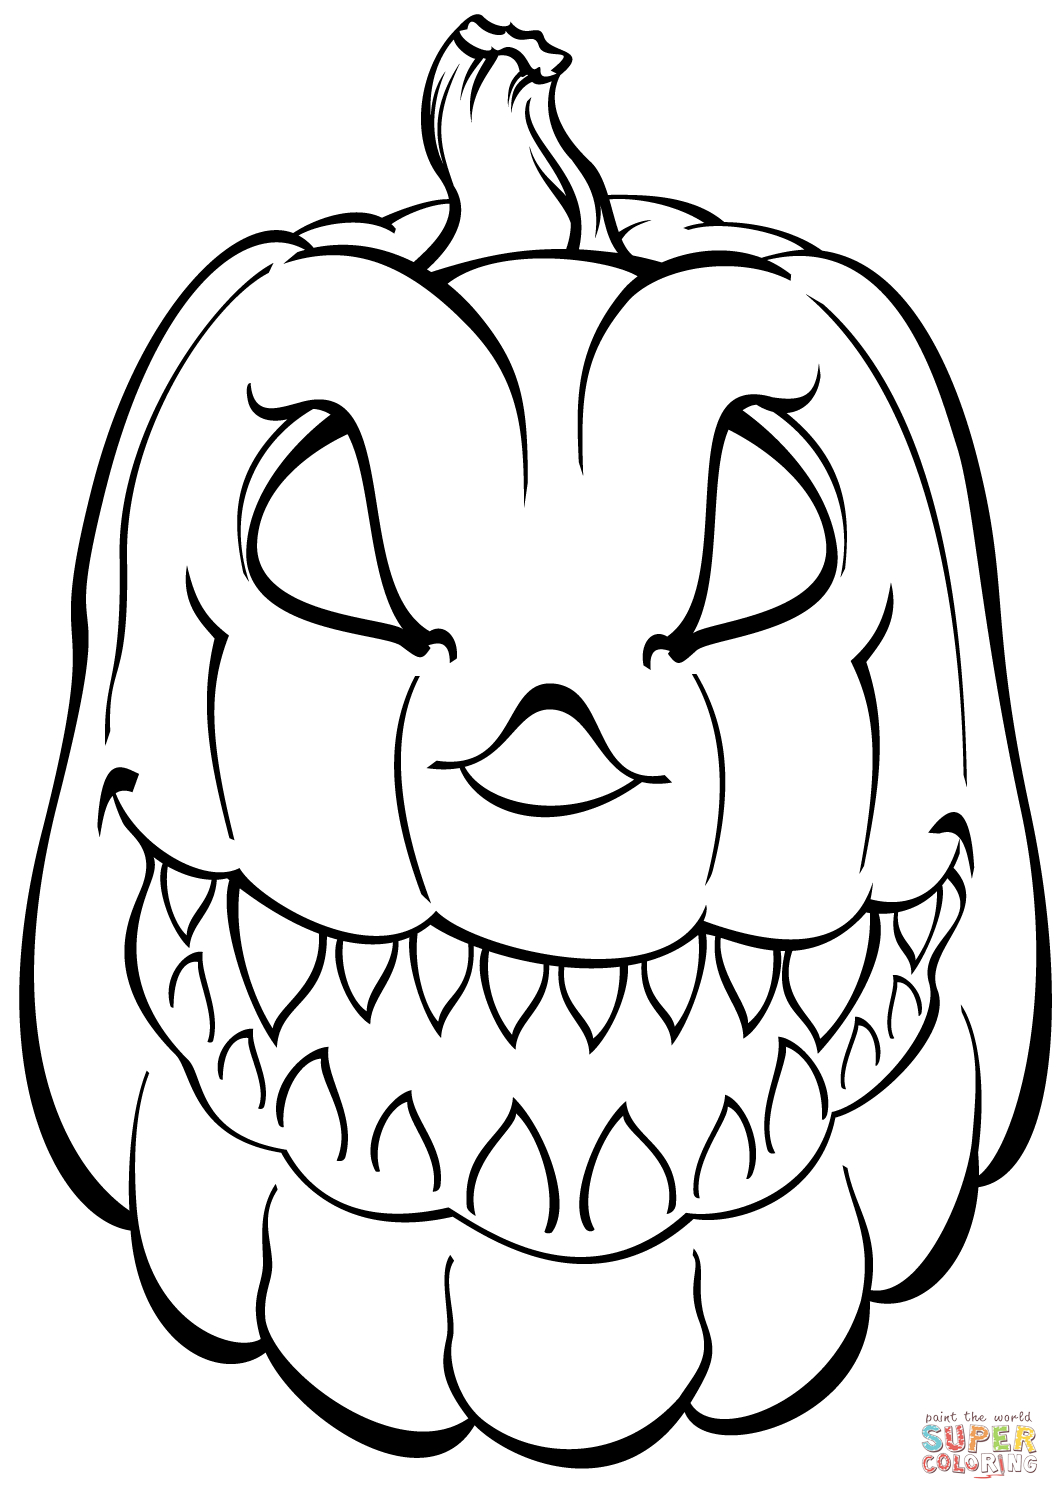 Scary Pumpkin Coloring Page | Free Printable Coloring Pages - Free Printable Pumpkin Coloring Pages